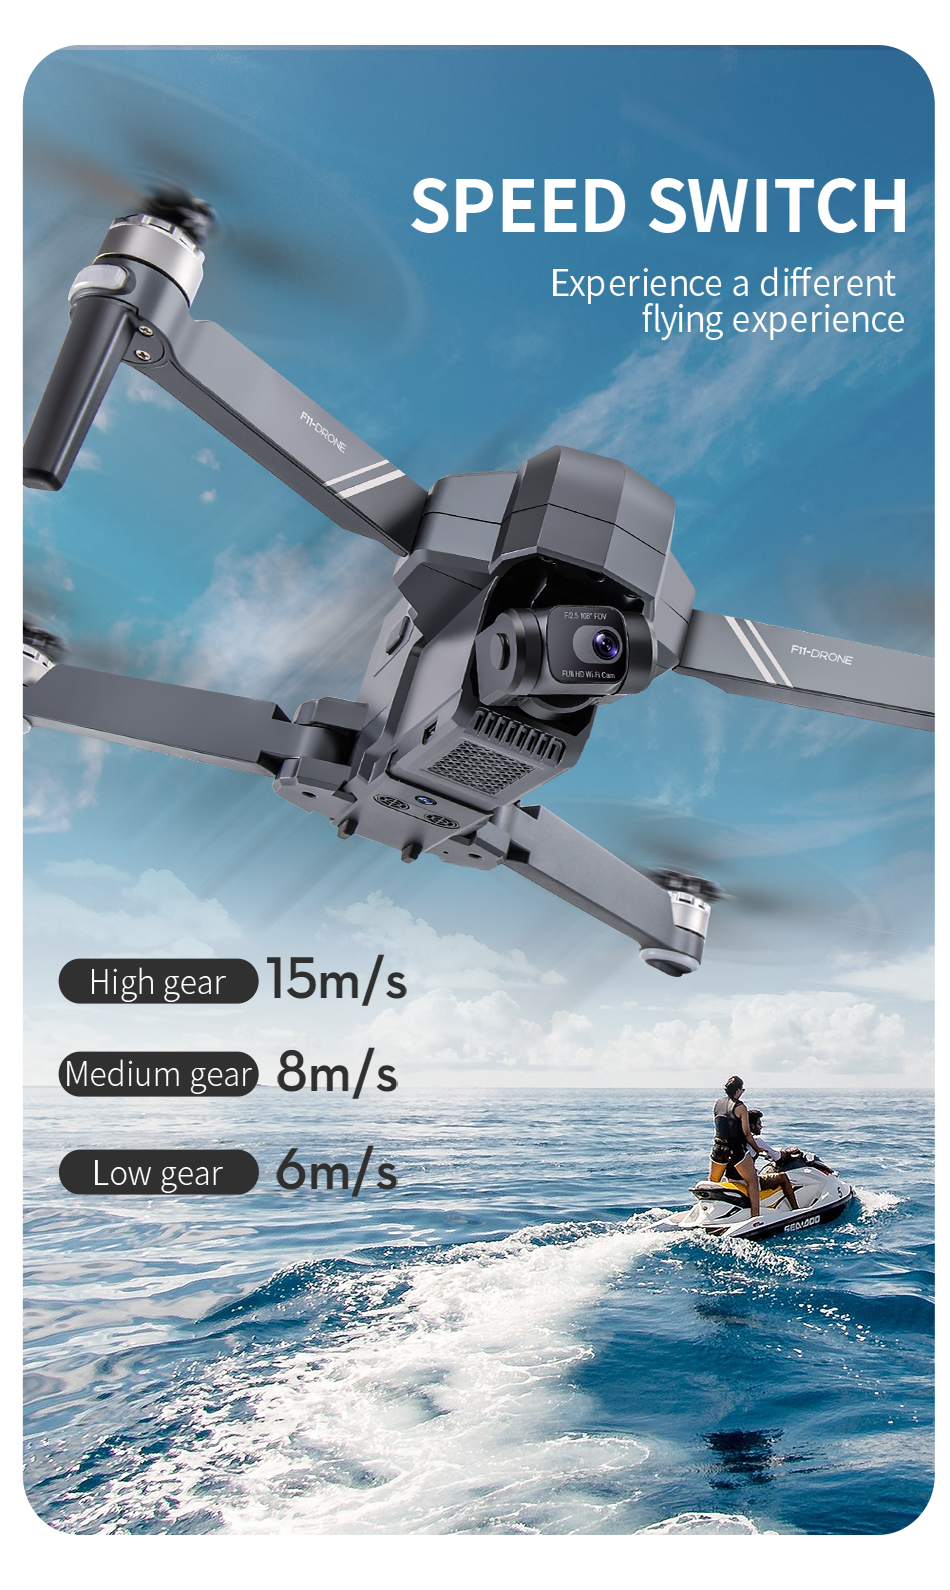 Hddd59ad6883341228f0ce5e396a214e3y - SJRC F11 Pro 4K F11s Pro 2.5K Camera Drone GPS 5G FPV HD 2 Axis Stabilized Gimbal EIS Professional Brushless Quadcopter RC Dron